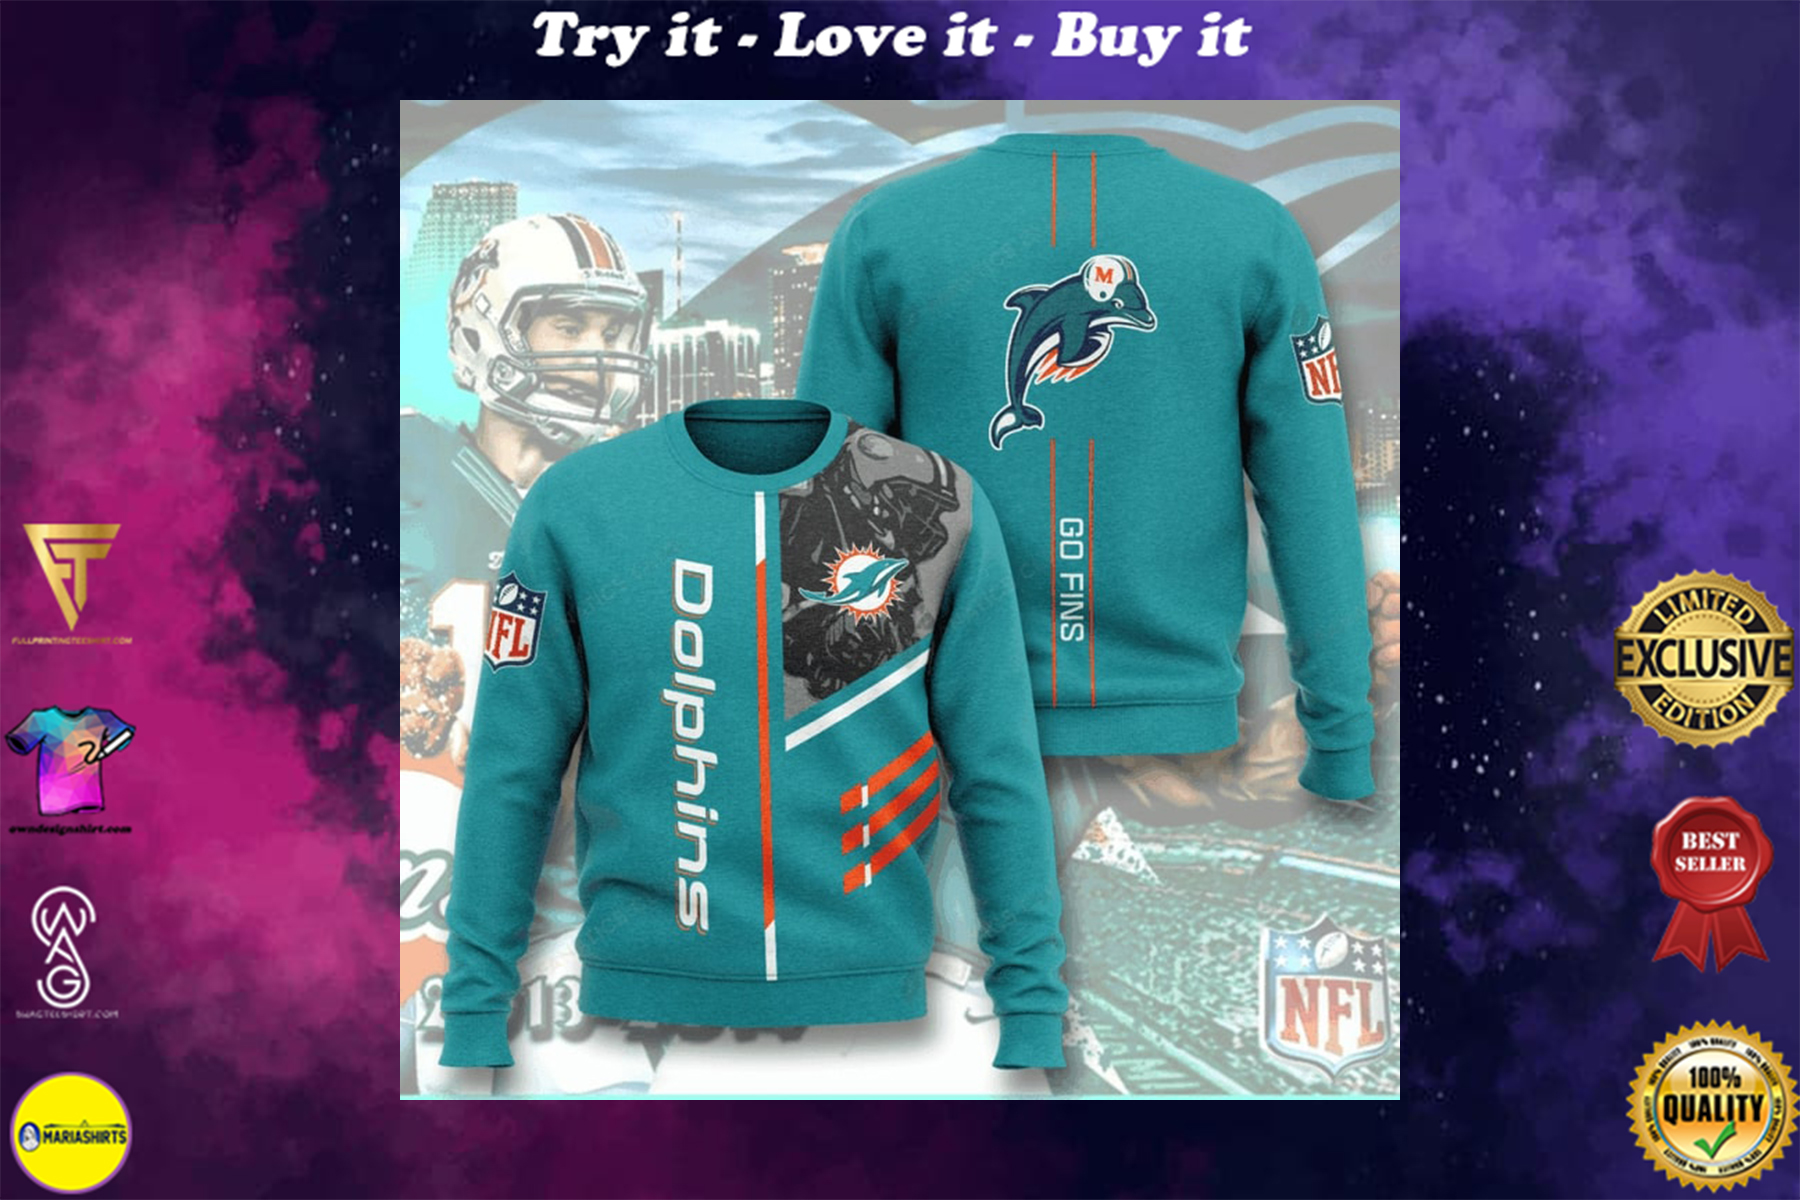 [highest selling] national football league miami dolphins go fins full printing ugly sweater - maria